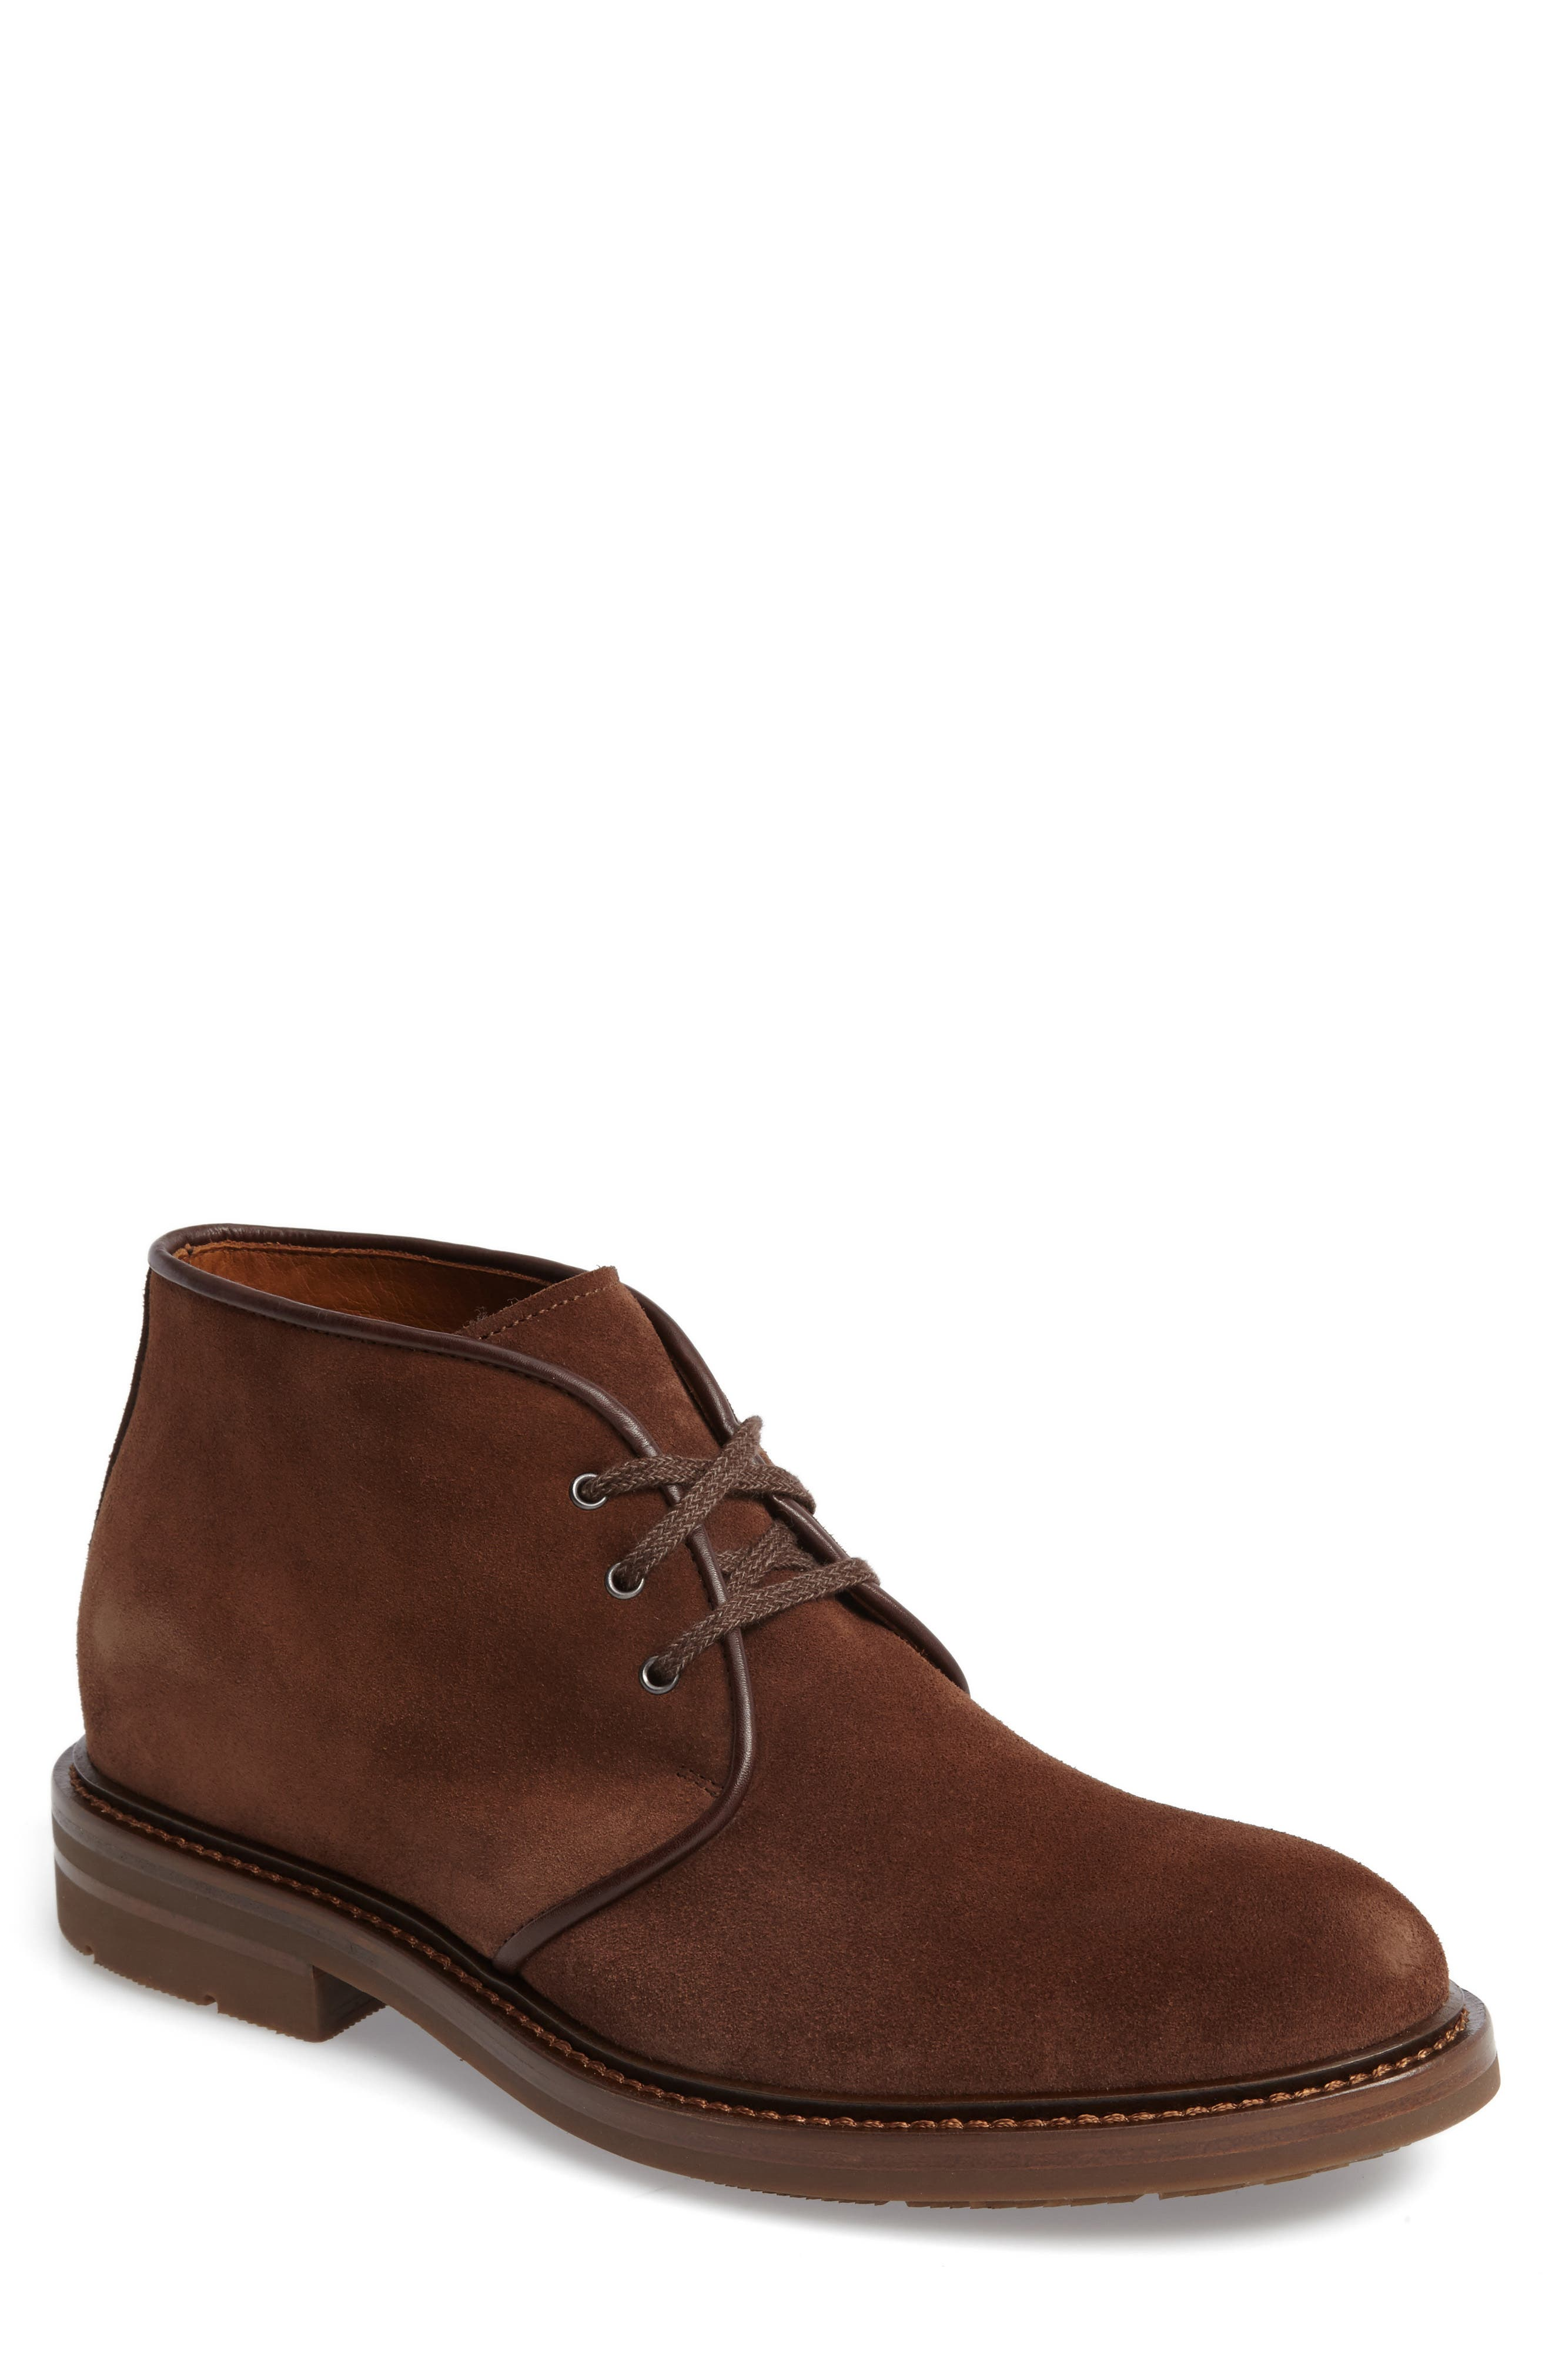 Alternate Image 1 Selected - Aquatalia Raphael Chukka Boot (Men)